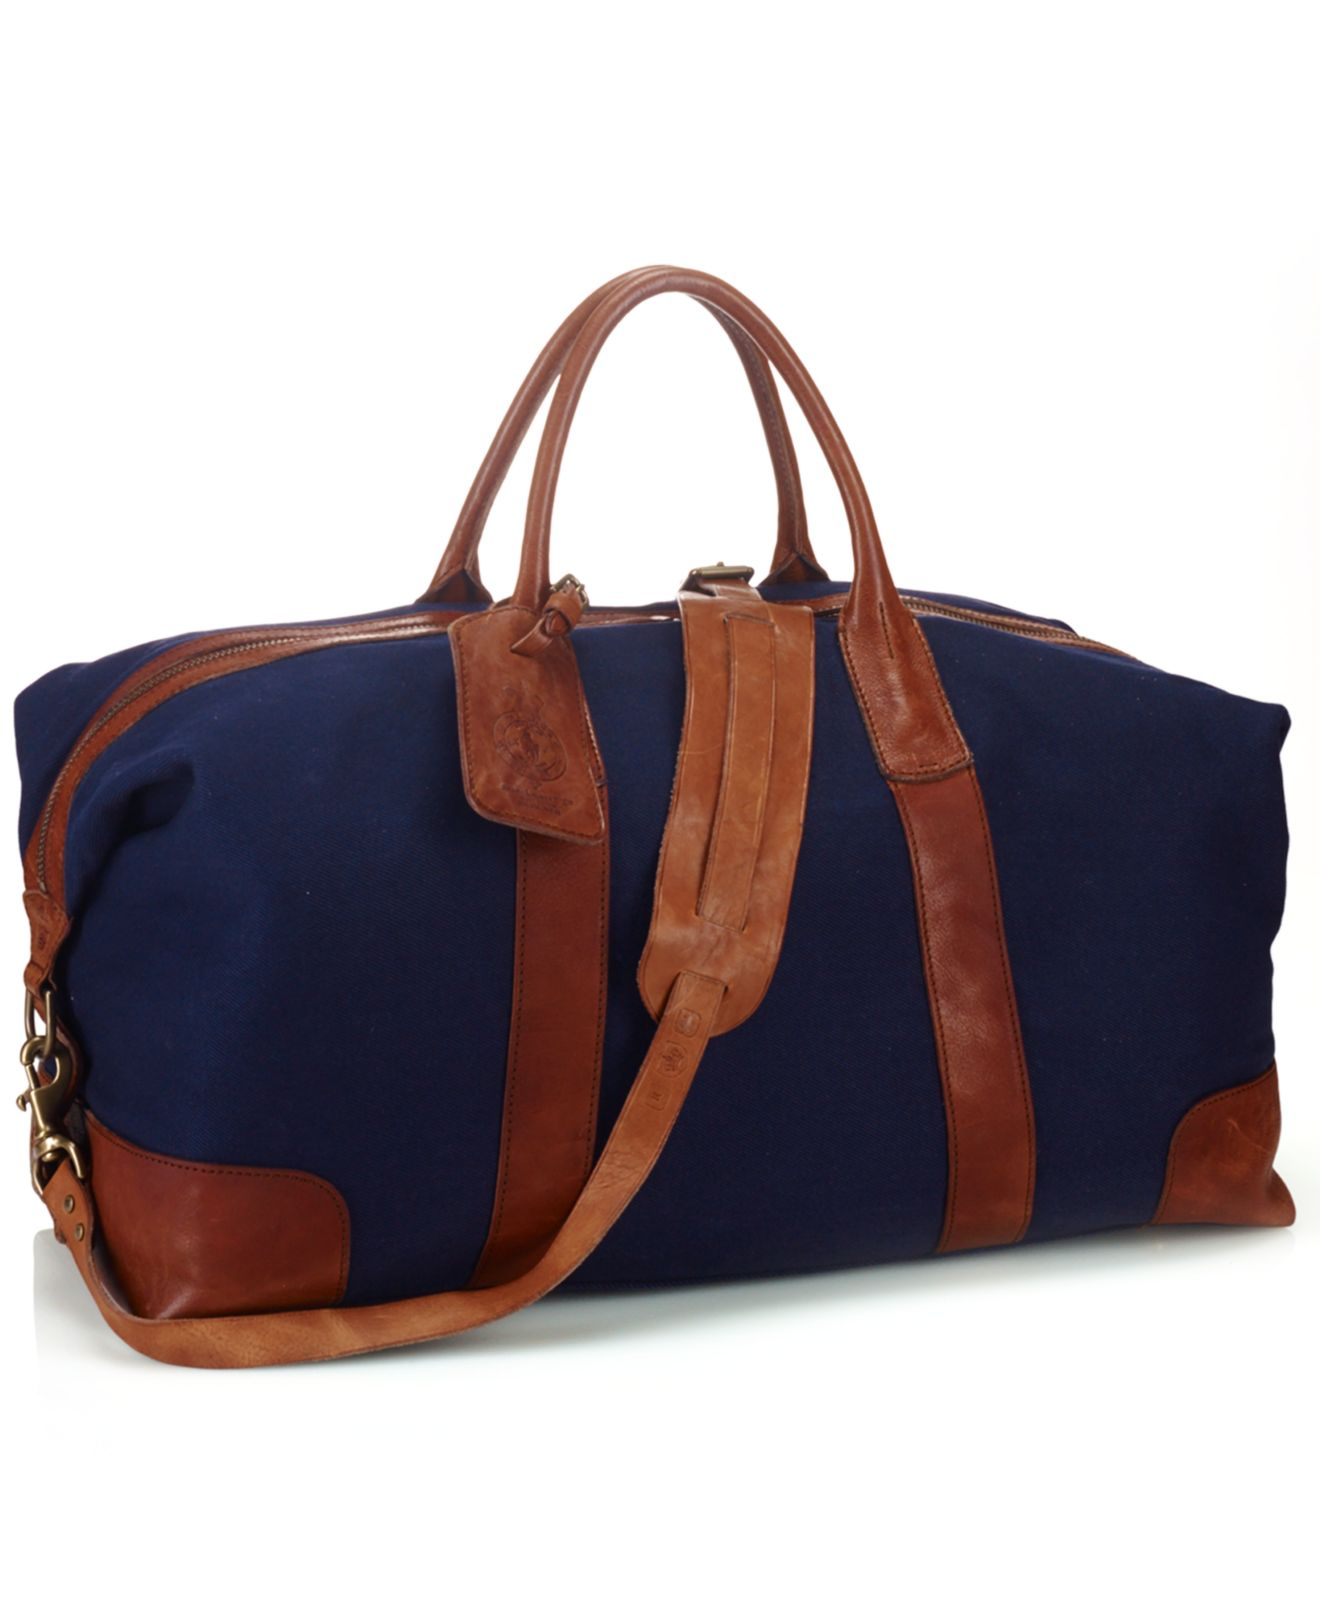 a83a2bae44 Lyst - Polo Ralph Lauren Canvas Duffel Bag in Blue for Men